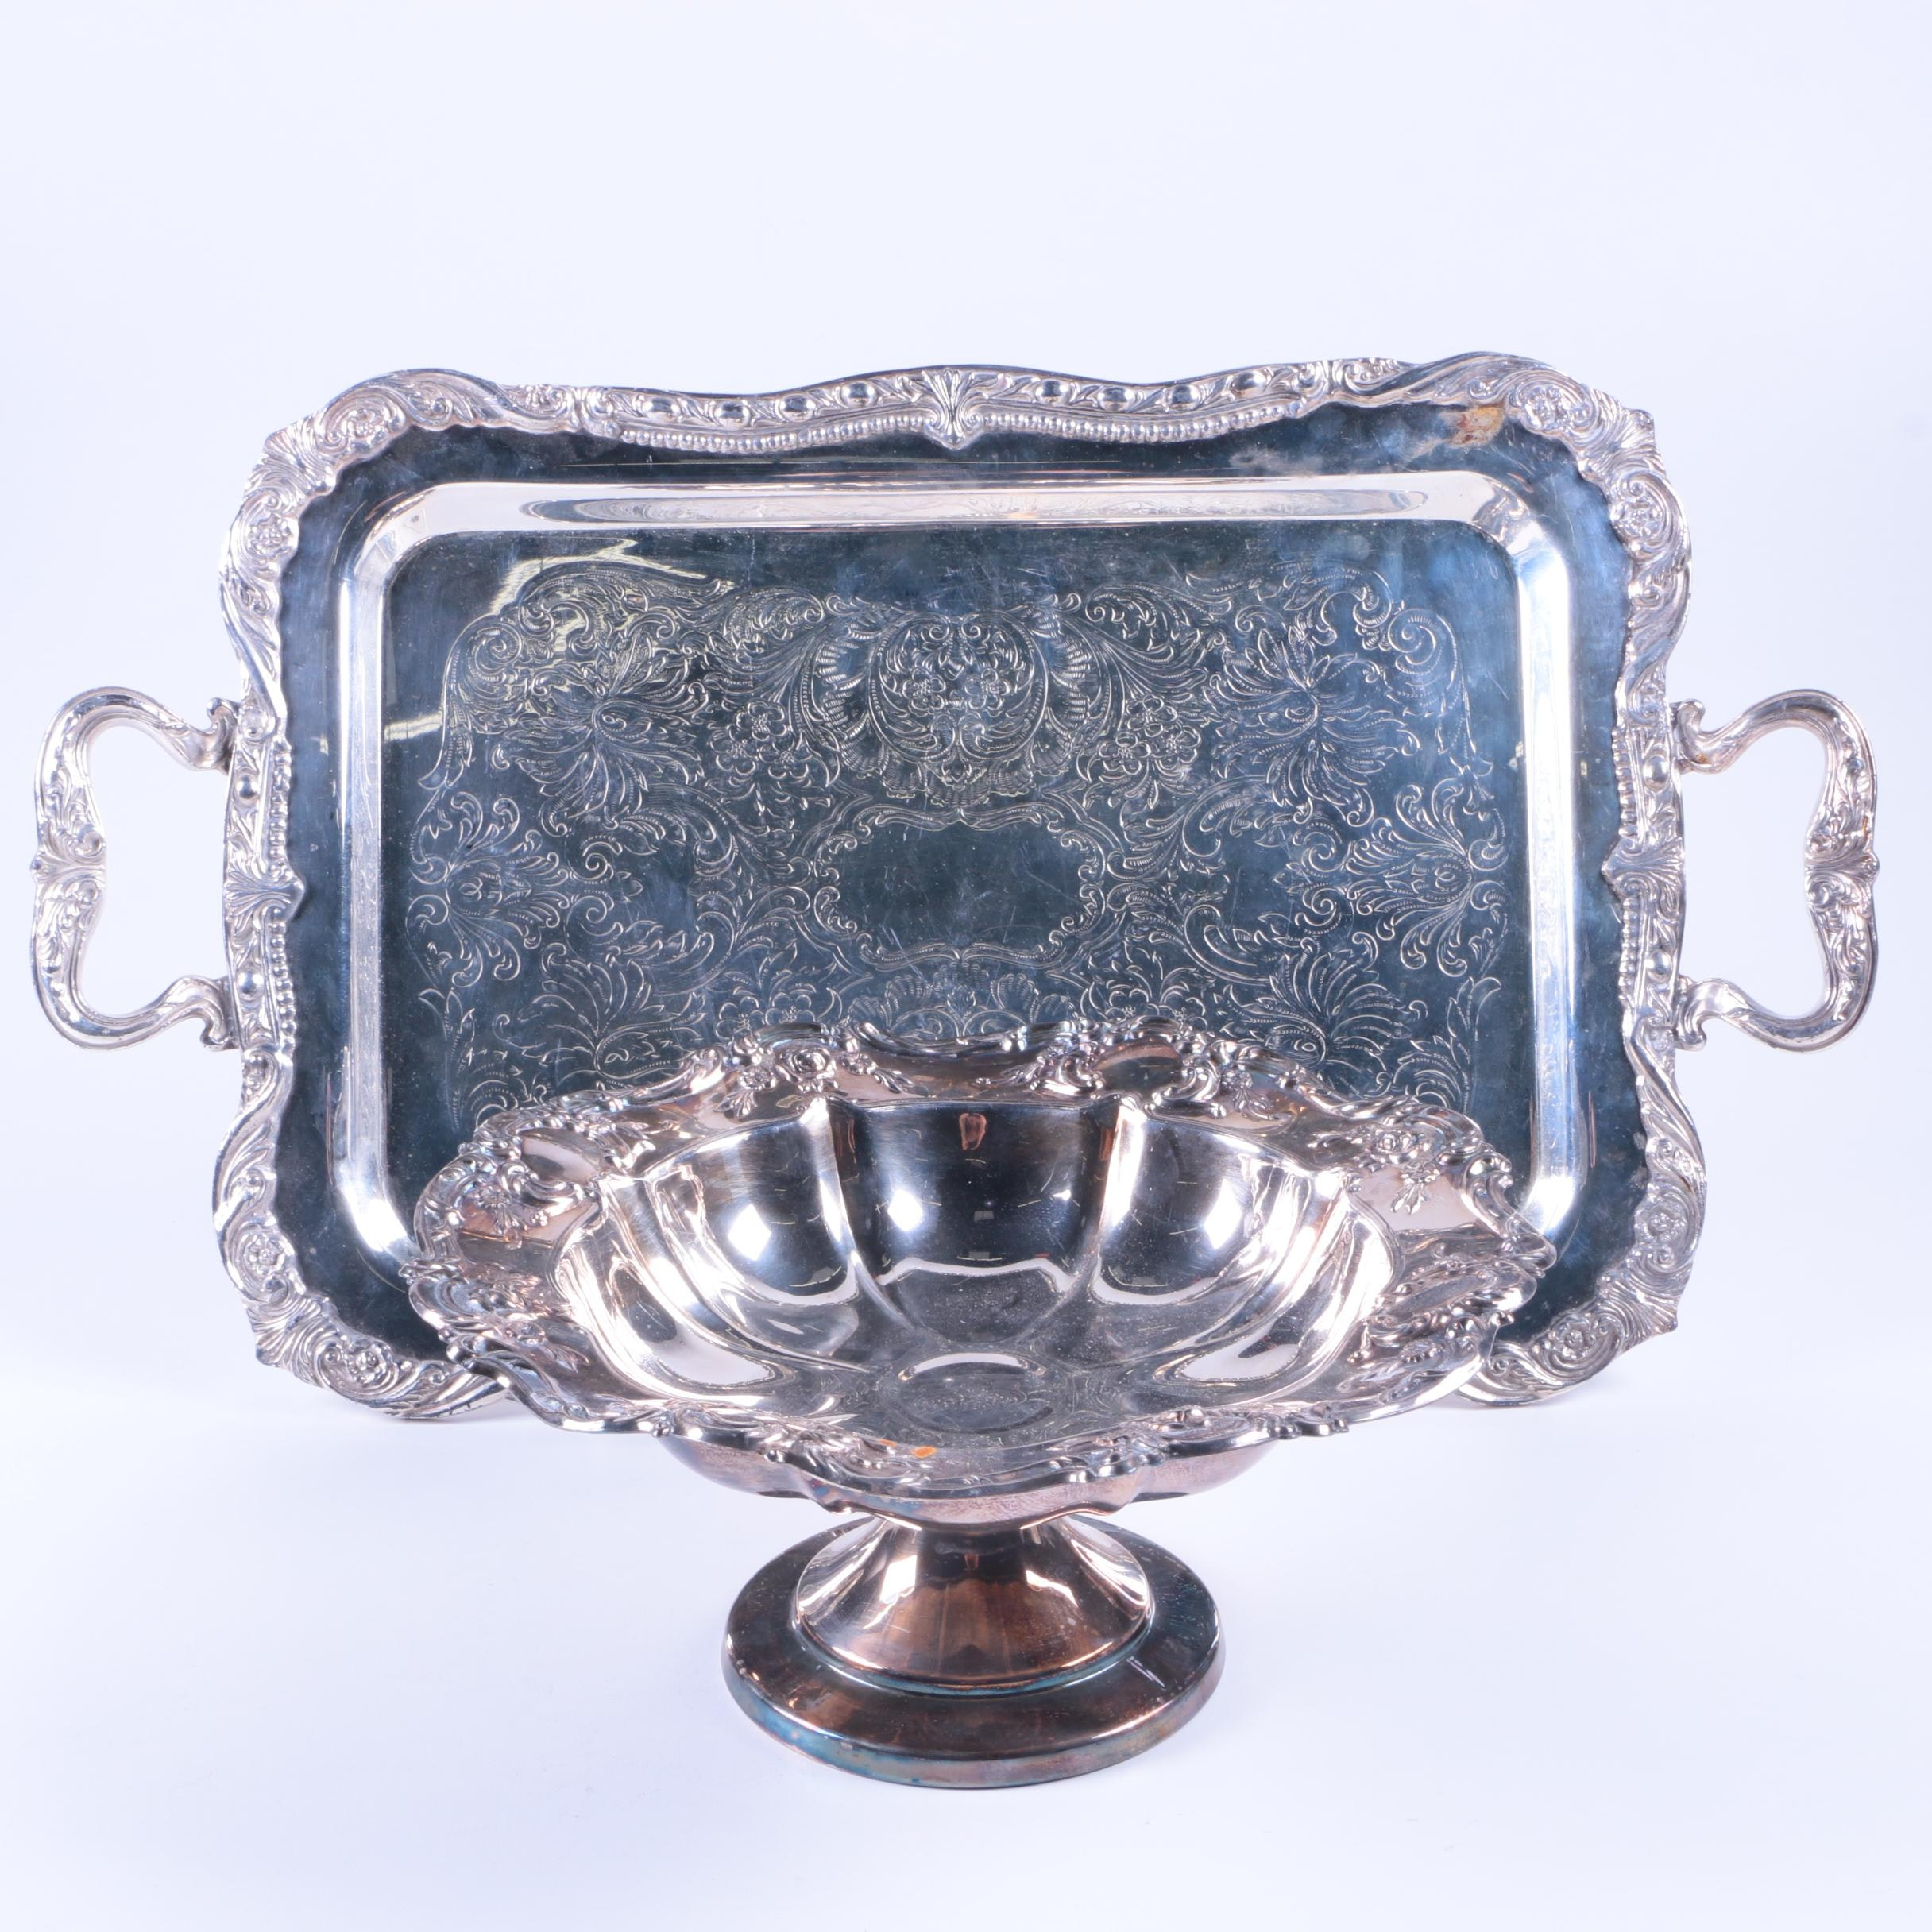 """Towle """"Old Master"""" Silver Plate Compote with Sheridan Serving Tray"""